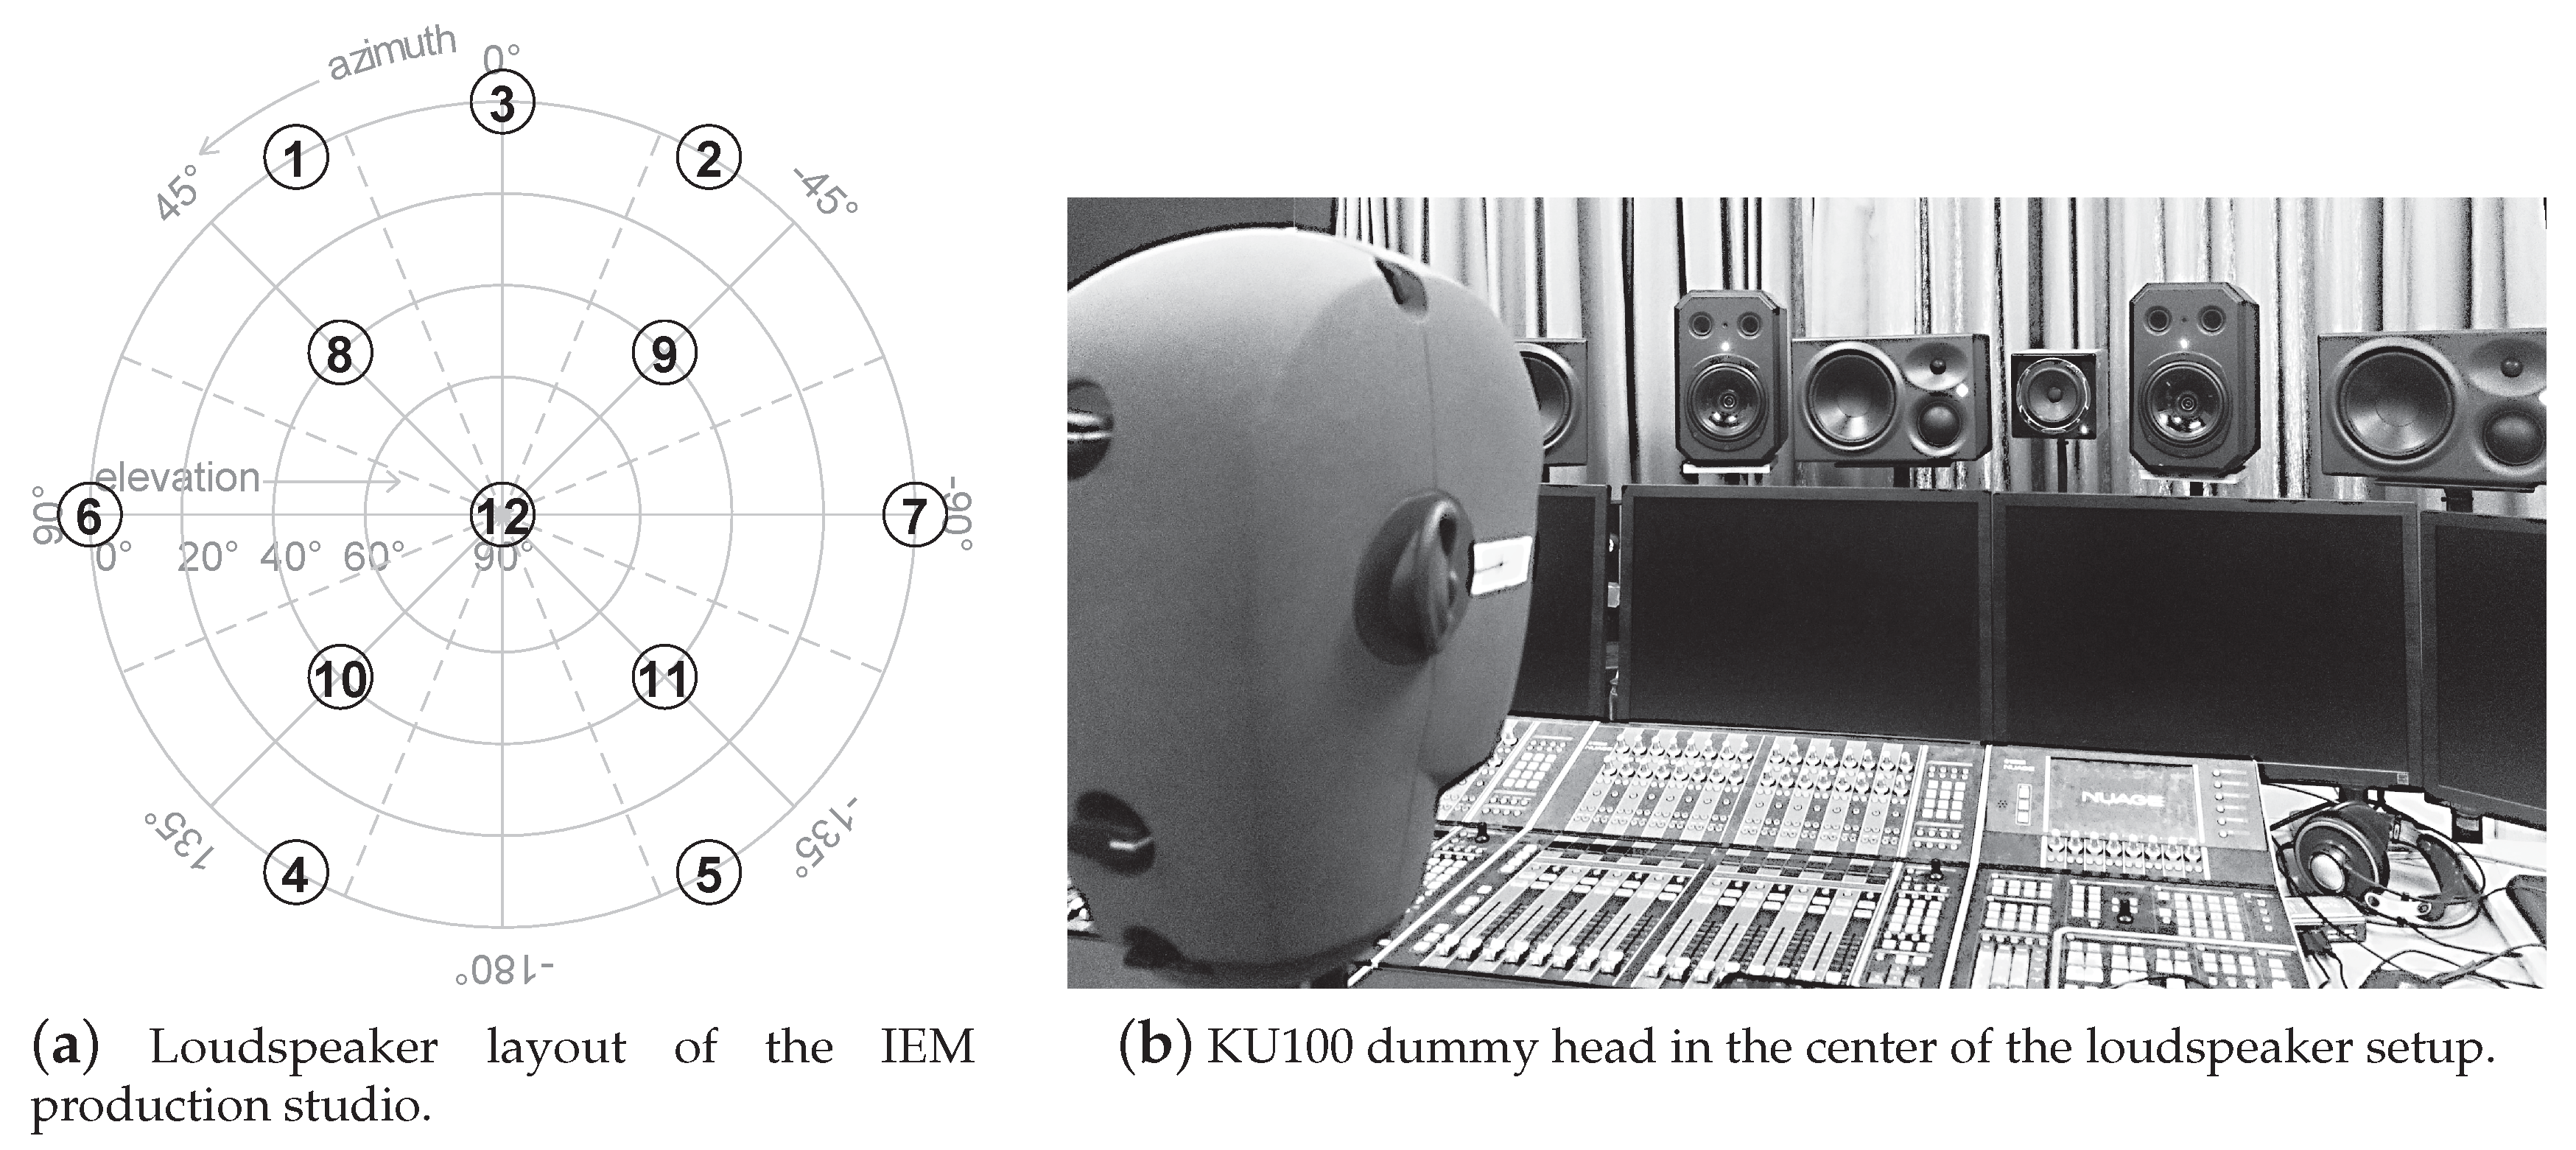 Comparison of audio synthesis environments